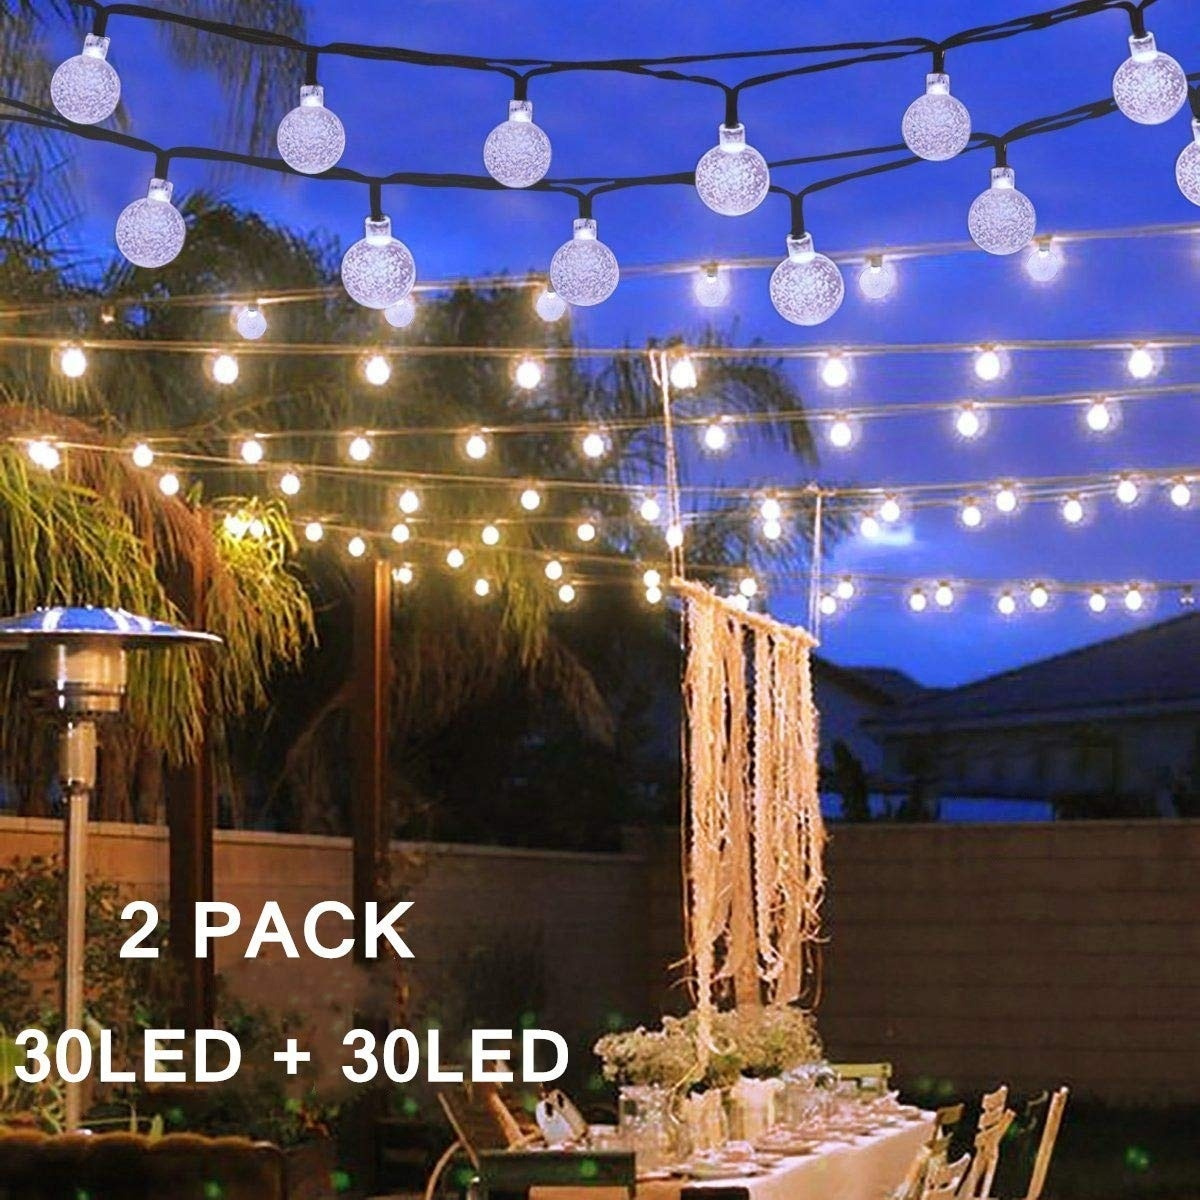 Solar Globe Lights LED String Lights 30 LED 19.8ft  Waterproof Fairy Garland For Outdoor Garden Christmas Wedding Decoration